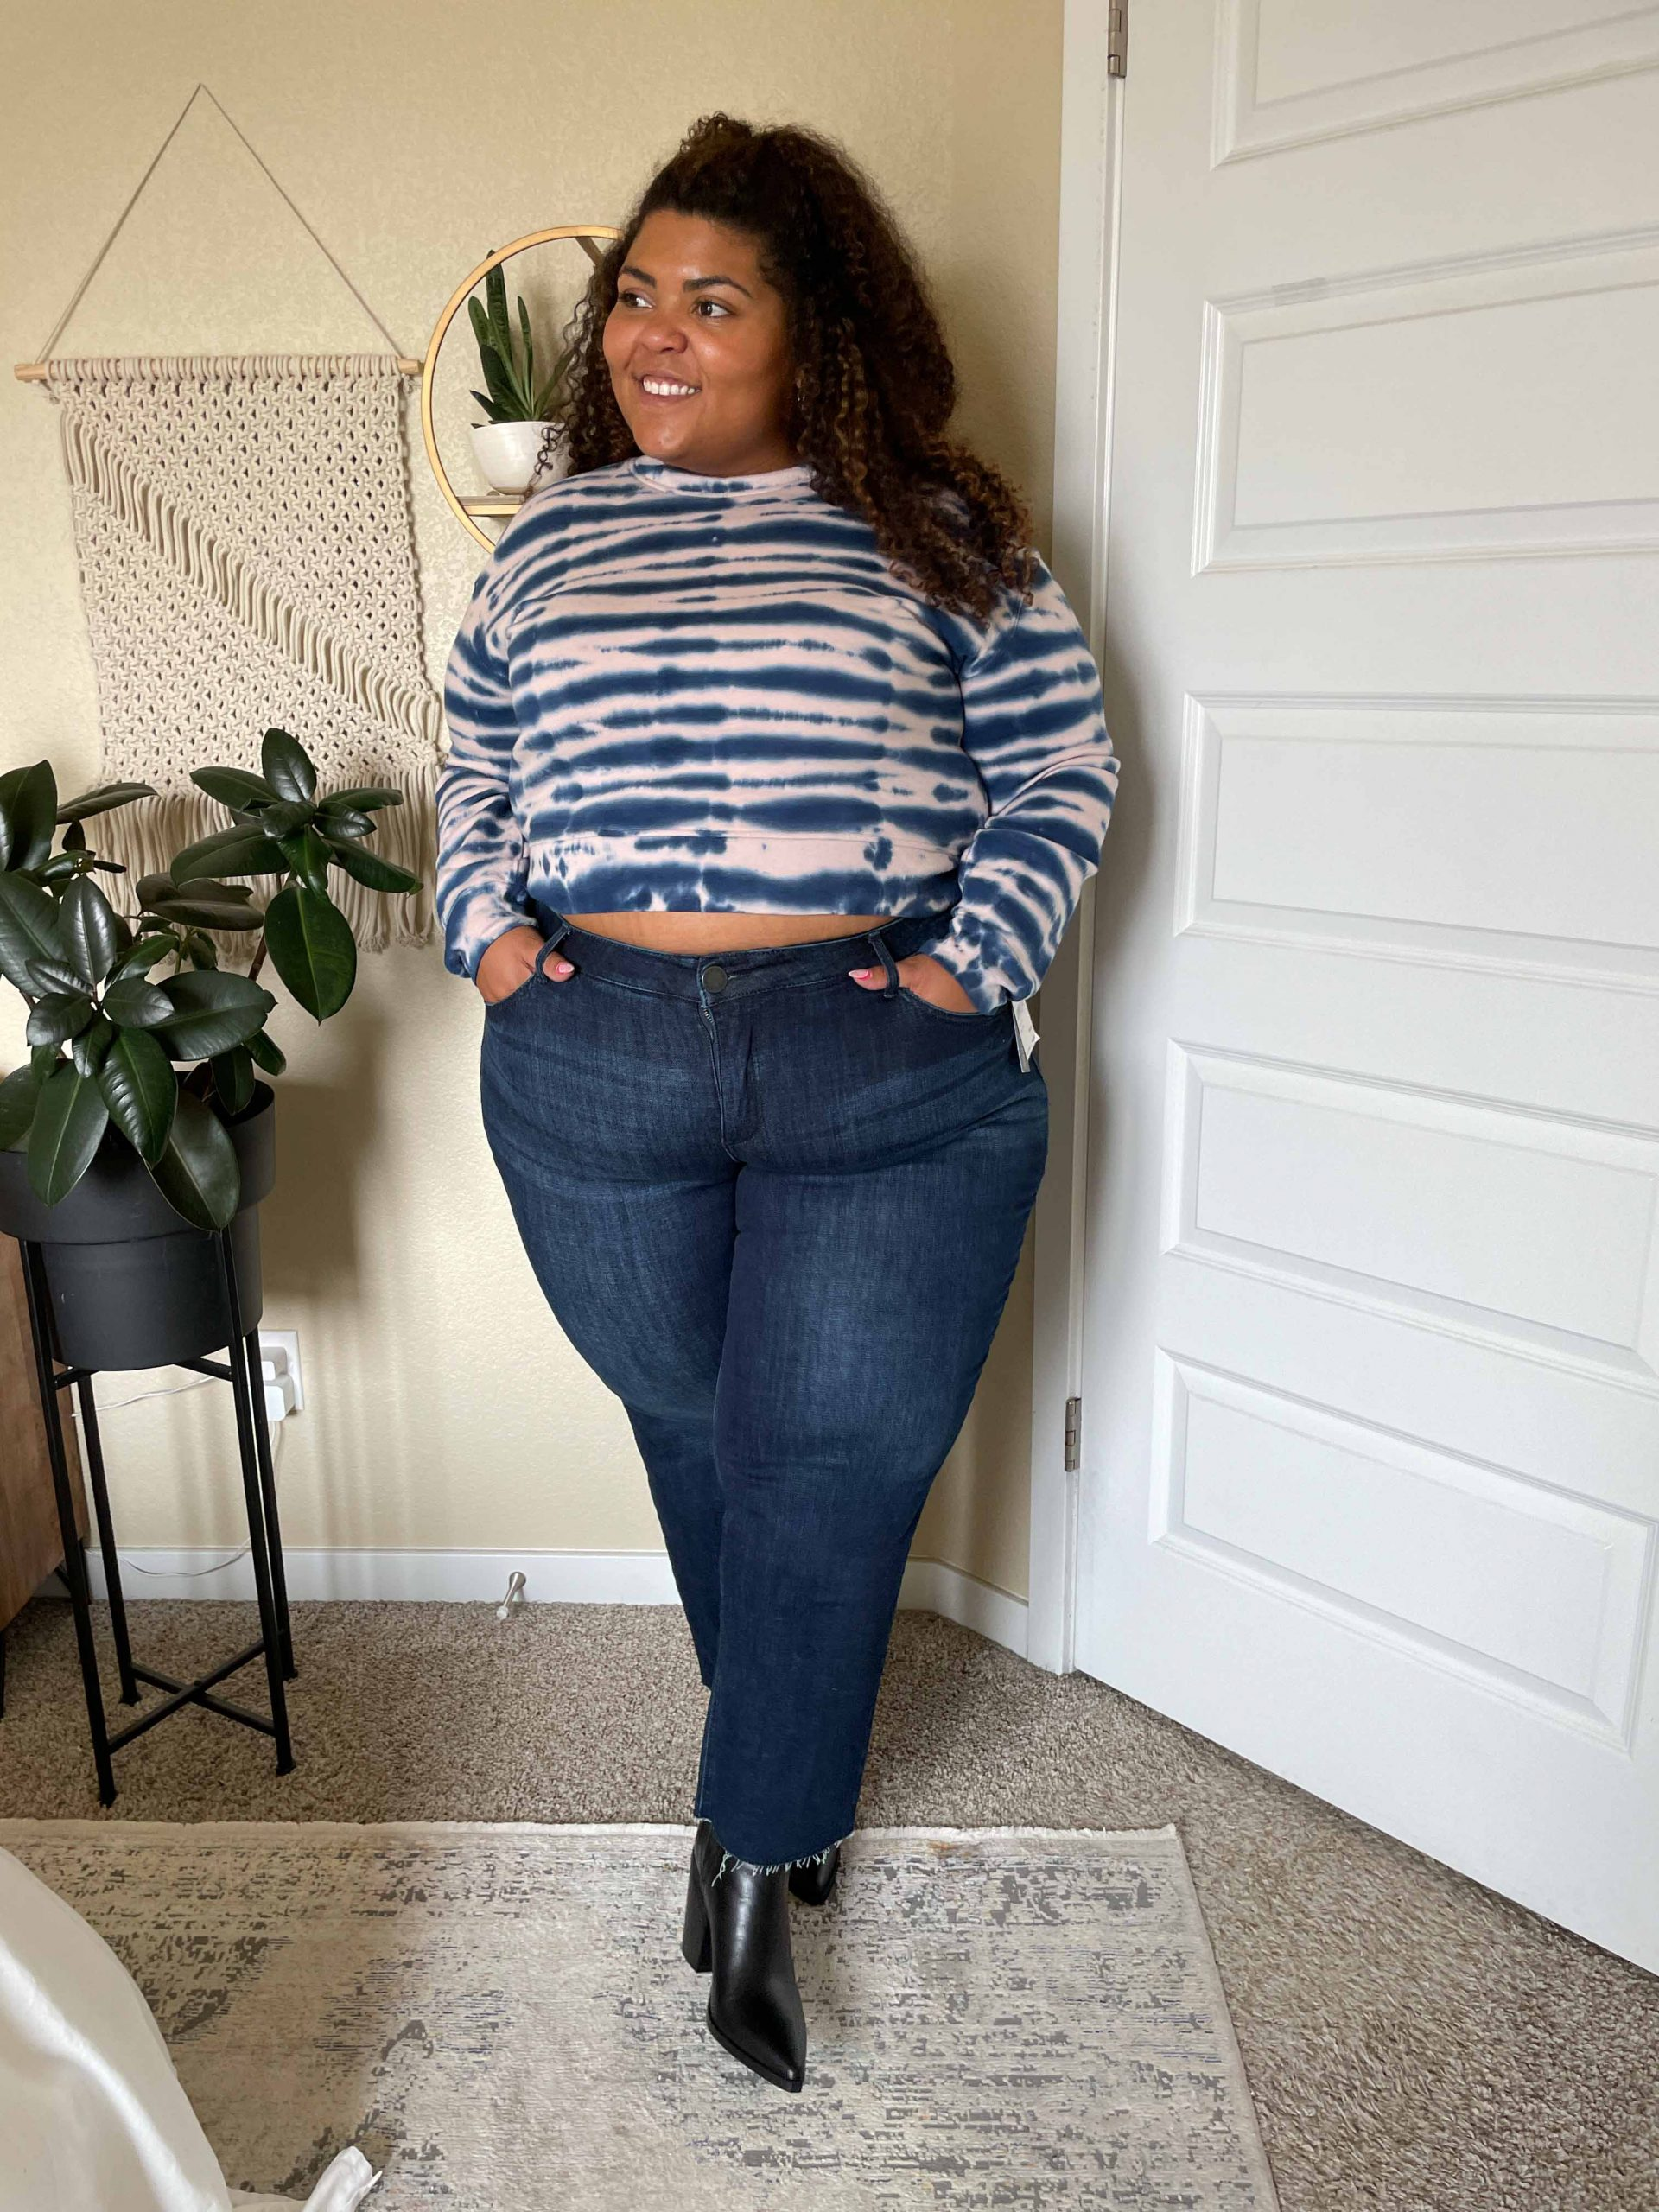 This RAILS top gives me all the mermaid meets zebra feels & I'm in love with it. I'm wearing a size L, but it goes up to an XXL! It pairs well with my favorite AllSaints bag.